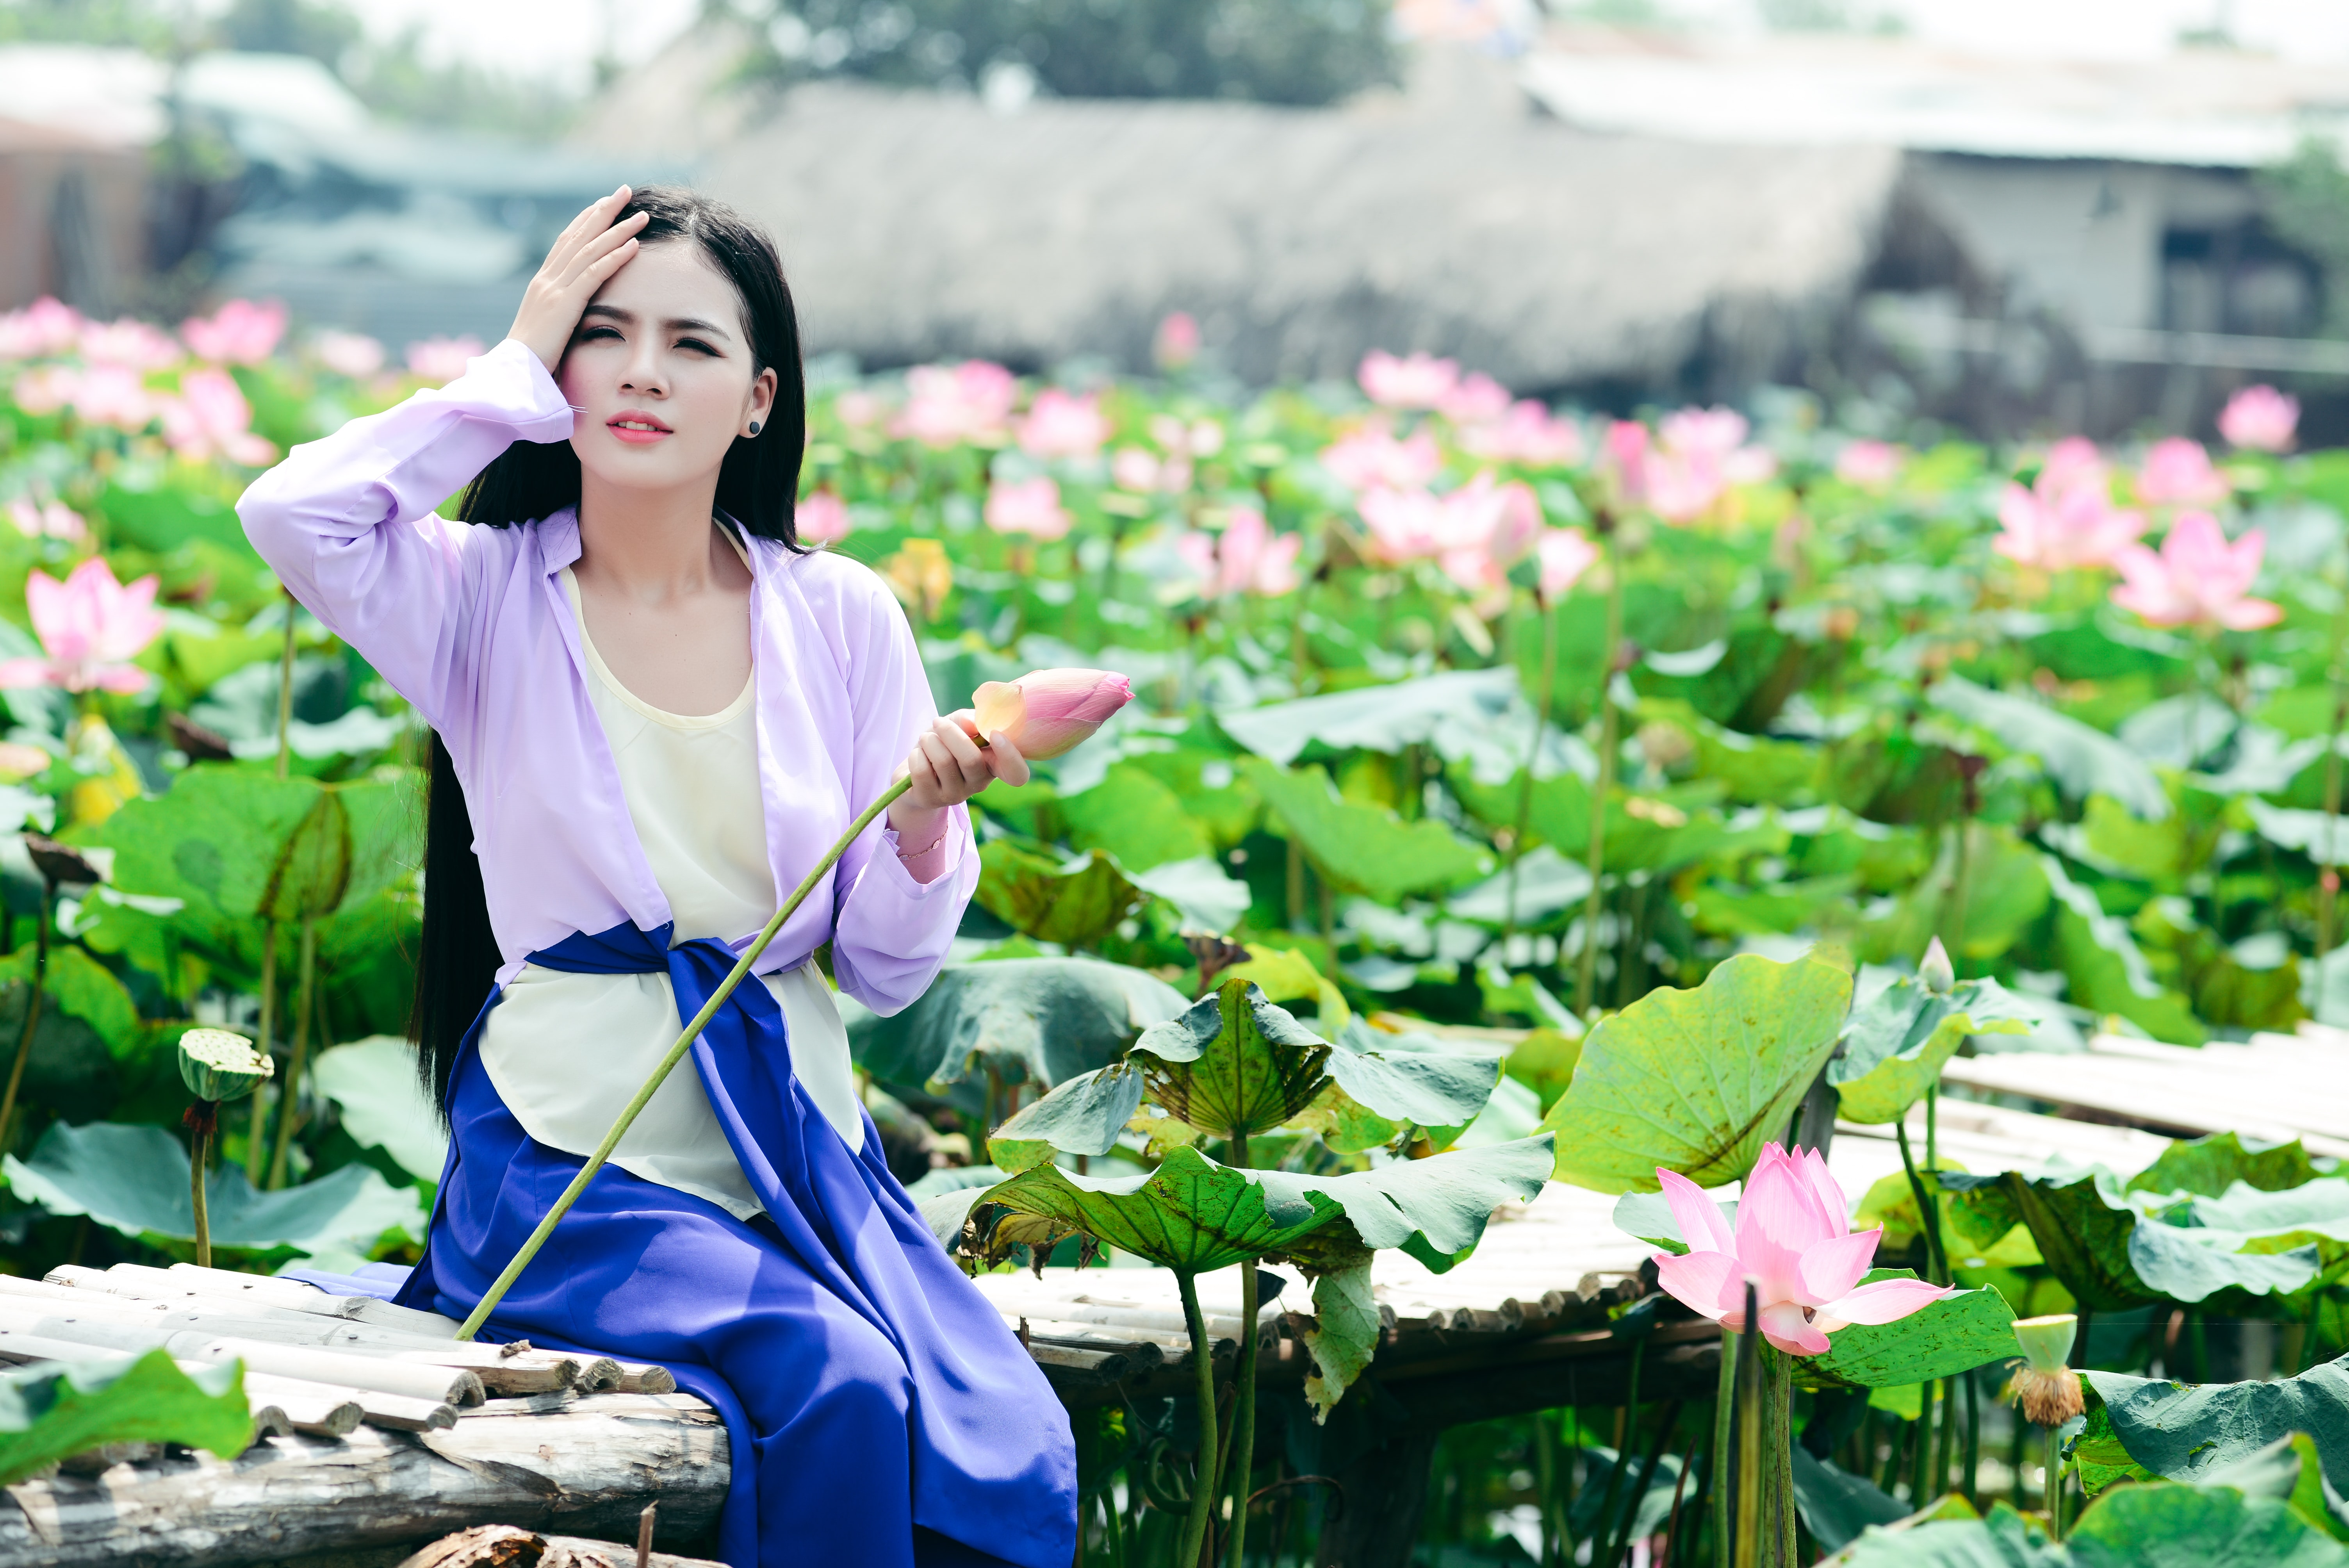 tilt shift photography of woman sitting behind pink flower plants